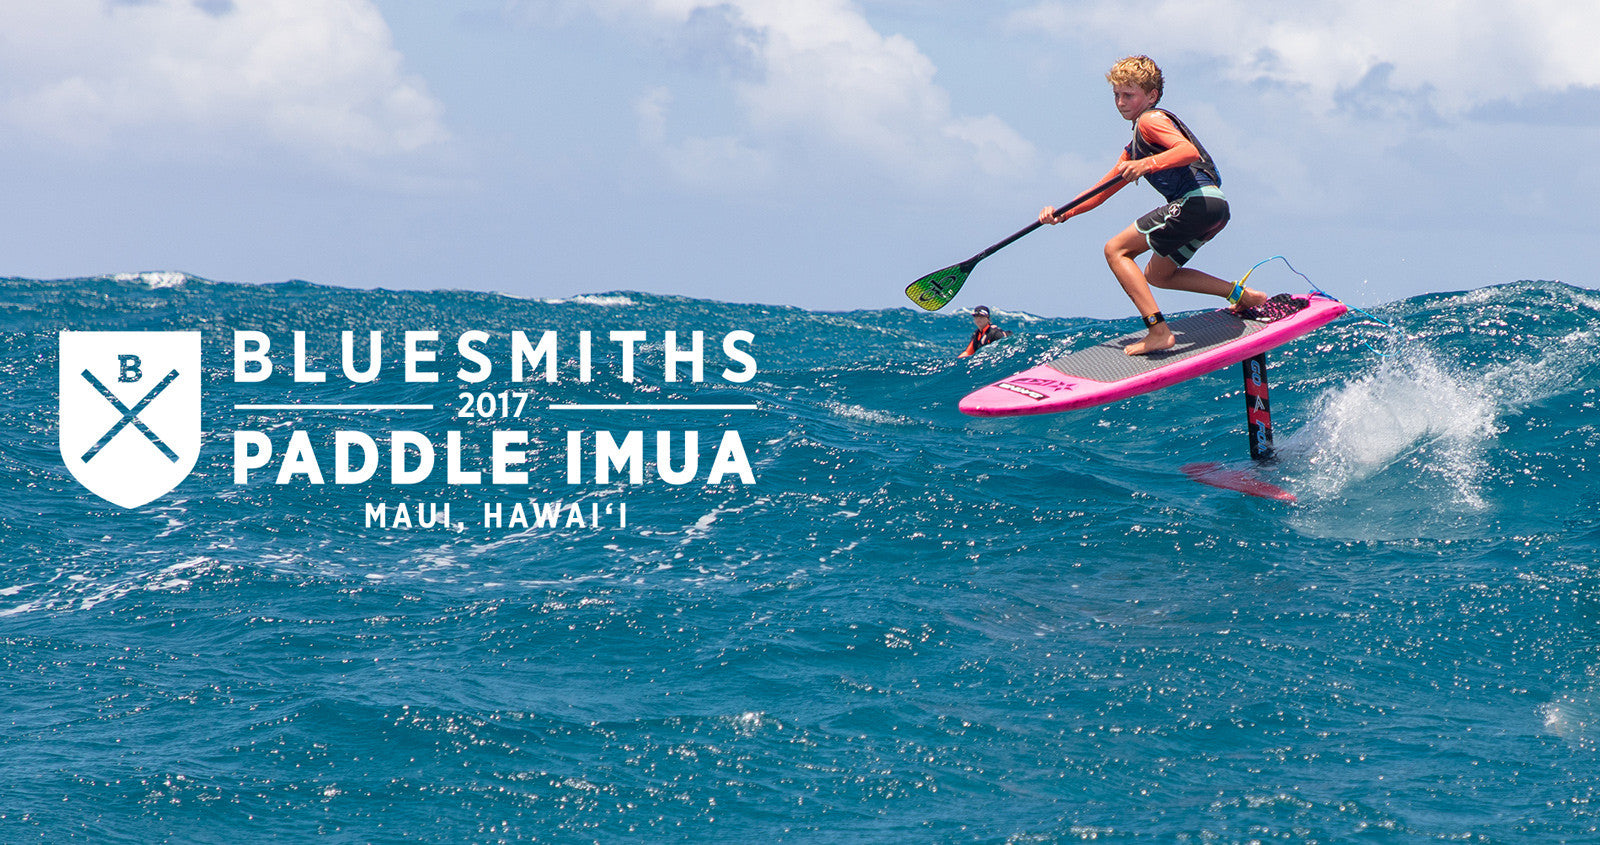 Hydro Foil SUP Almost Beats Unlimited SUP Experts in Bluesmiths Paddle Imua